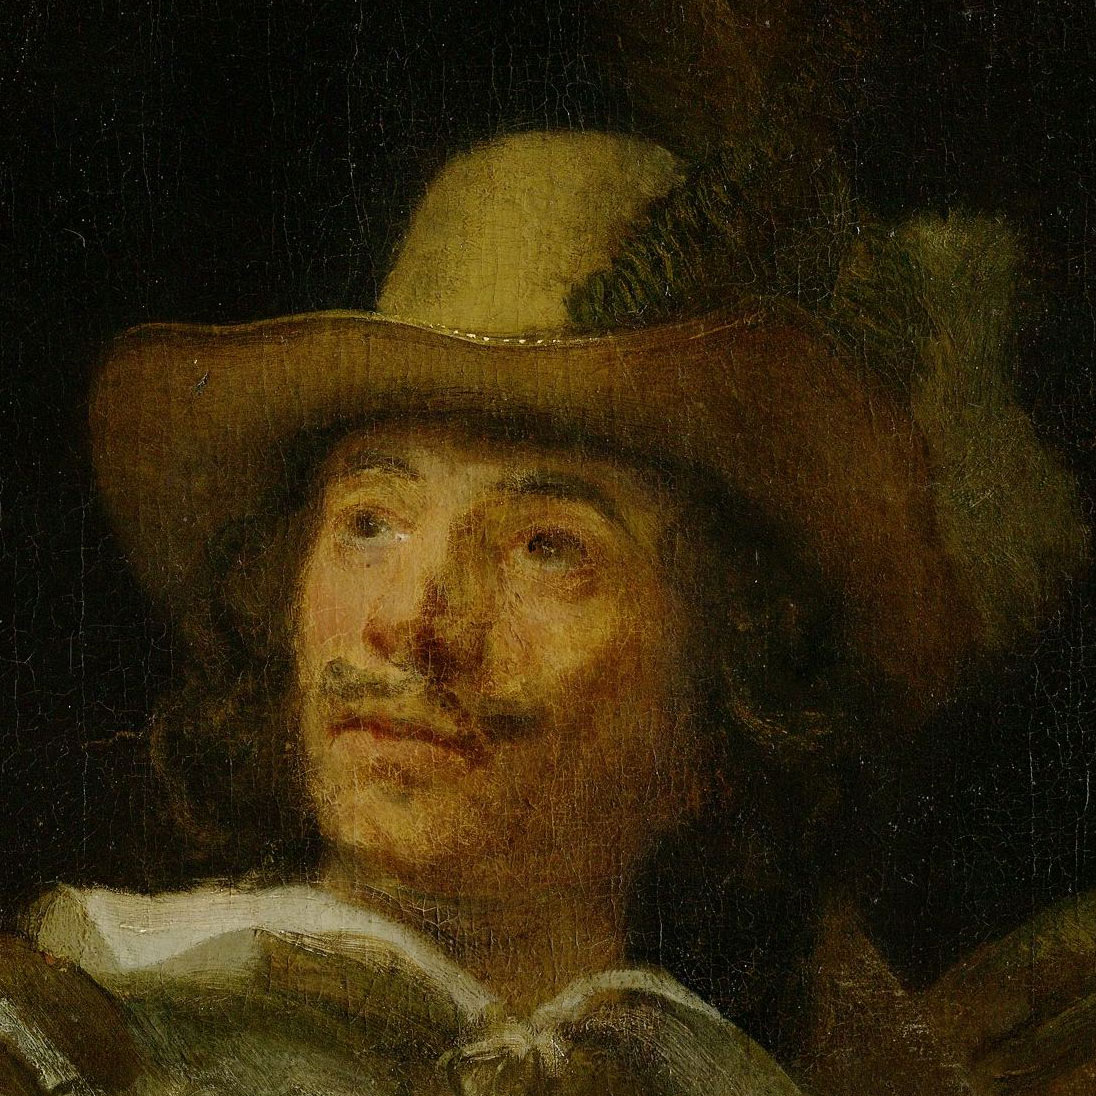 An analysis of rembrandt van rijns painting the night watch